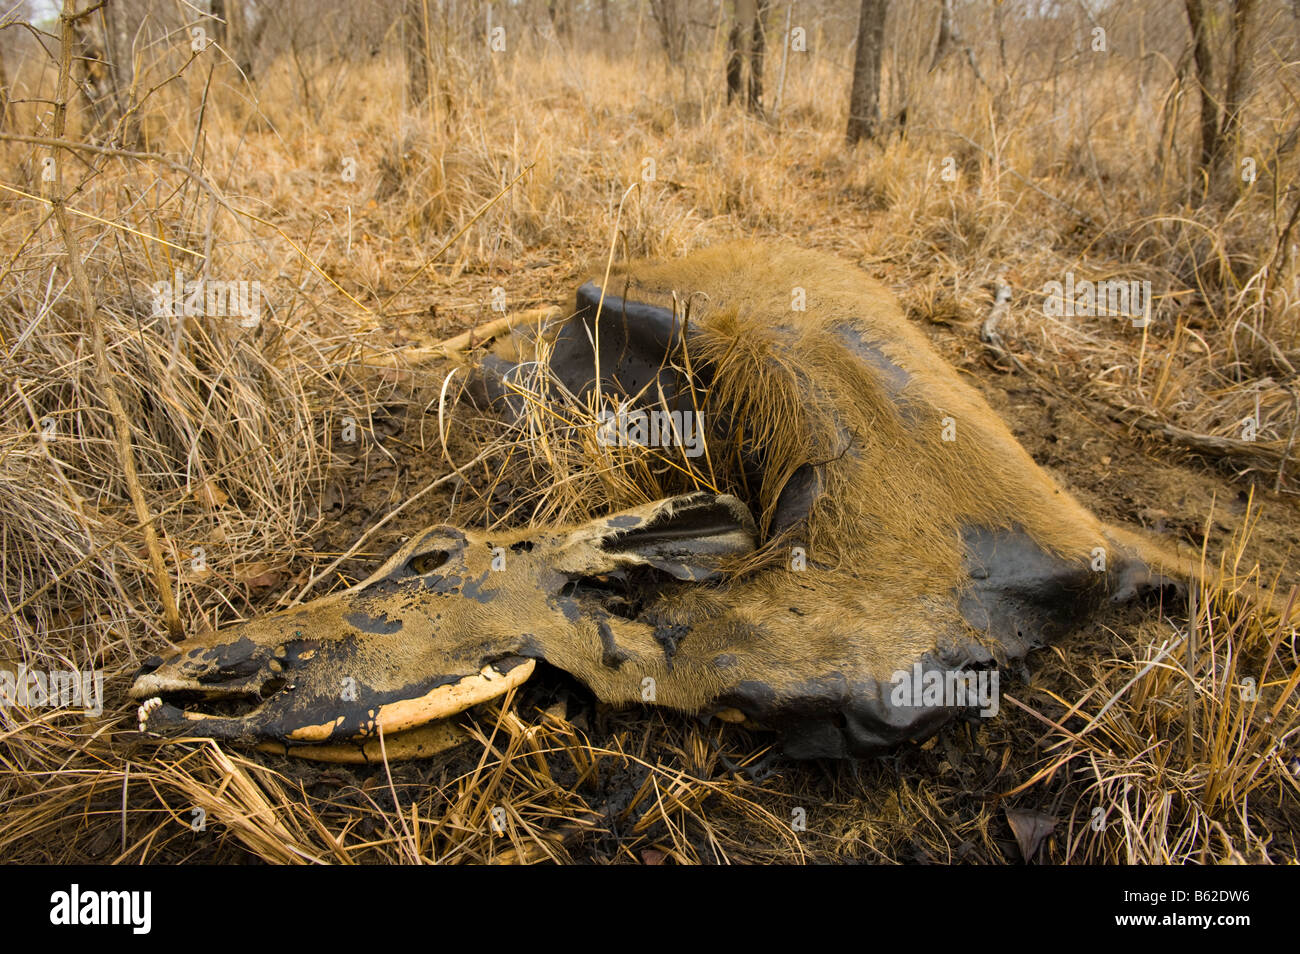 carrion Impala die dying of thirst carcass cadaver in the savannah  savanna south-africa dead water shortage corruption - Stock Image